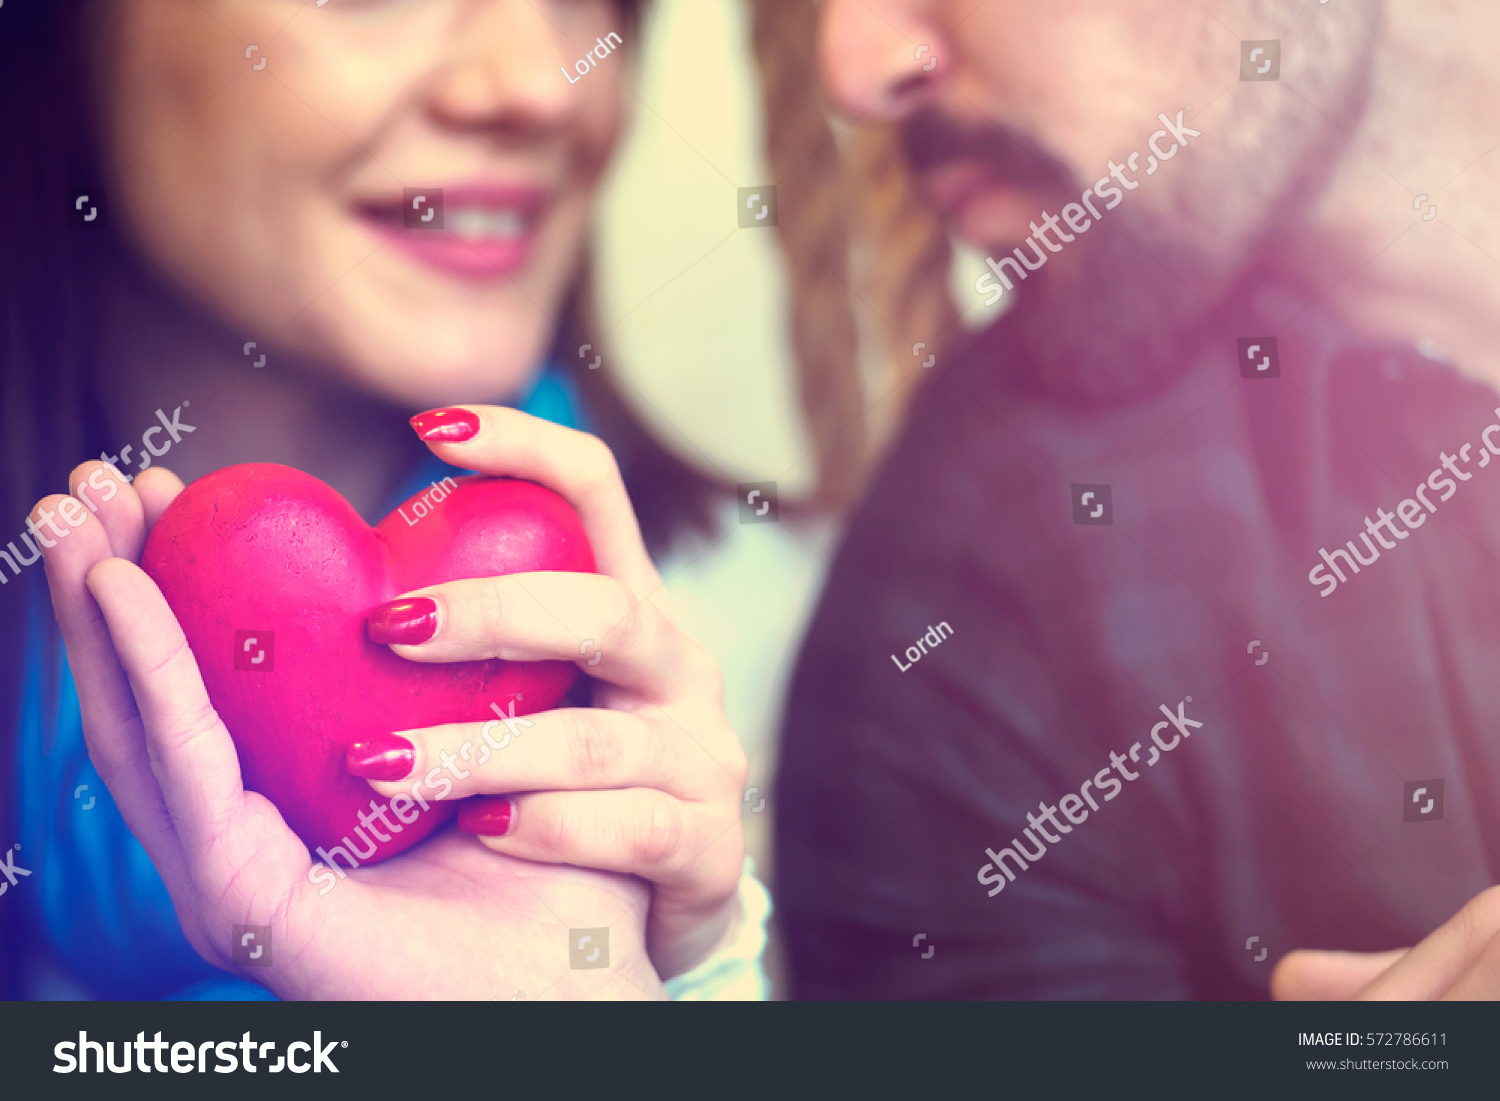 valentines day heart couple - photo #42